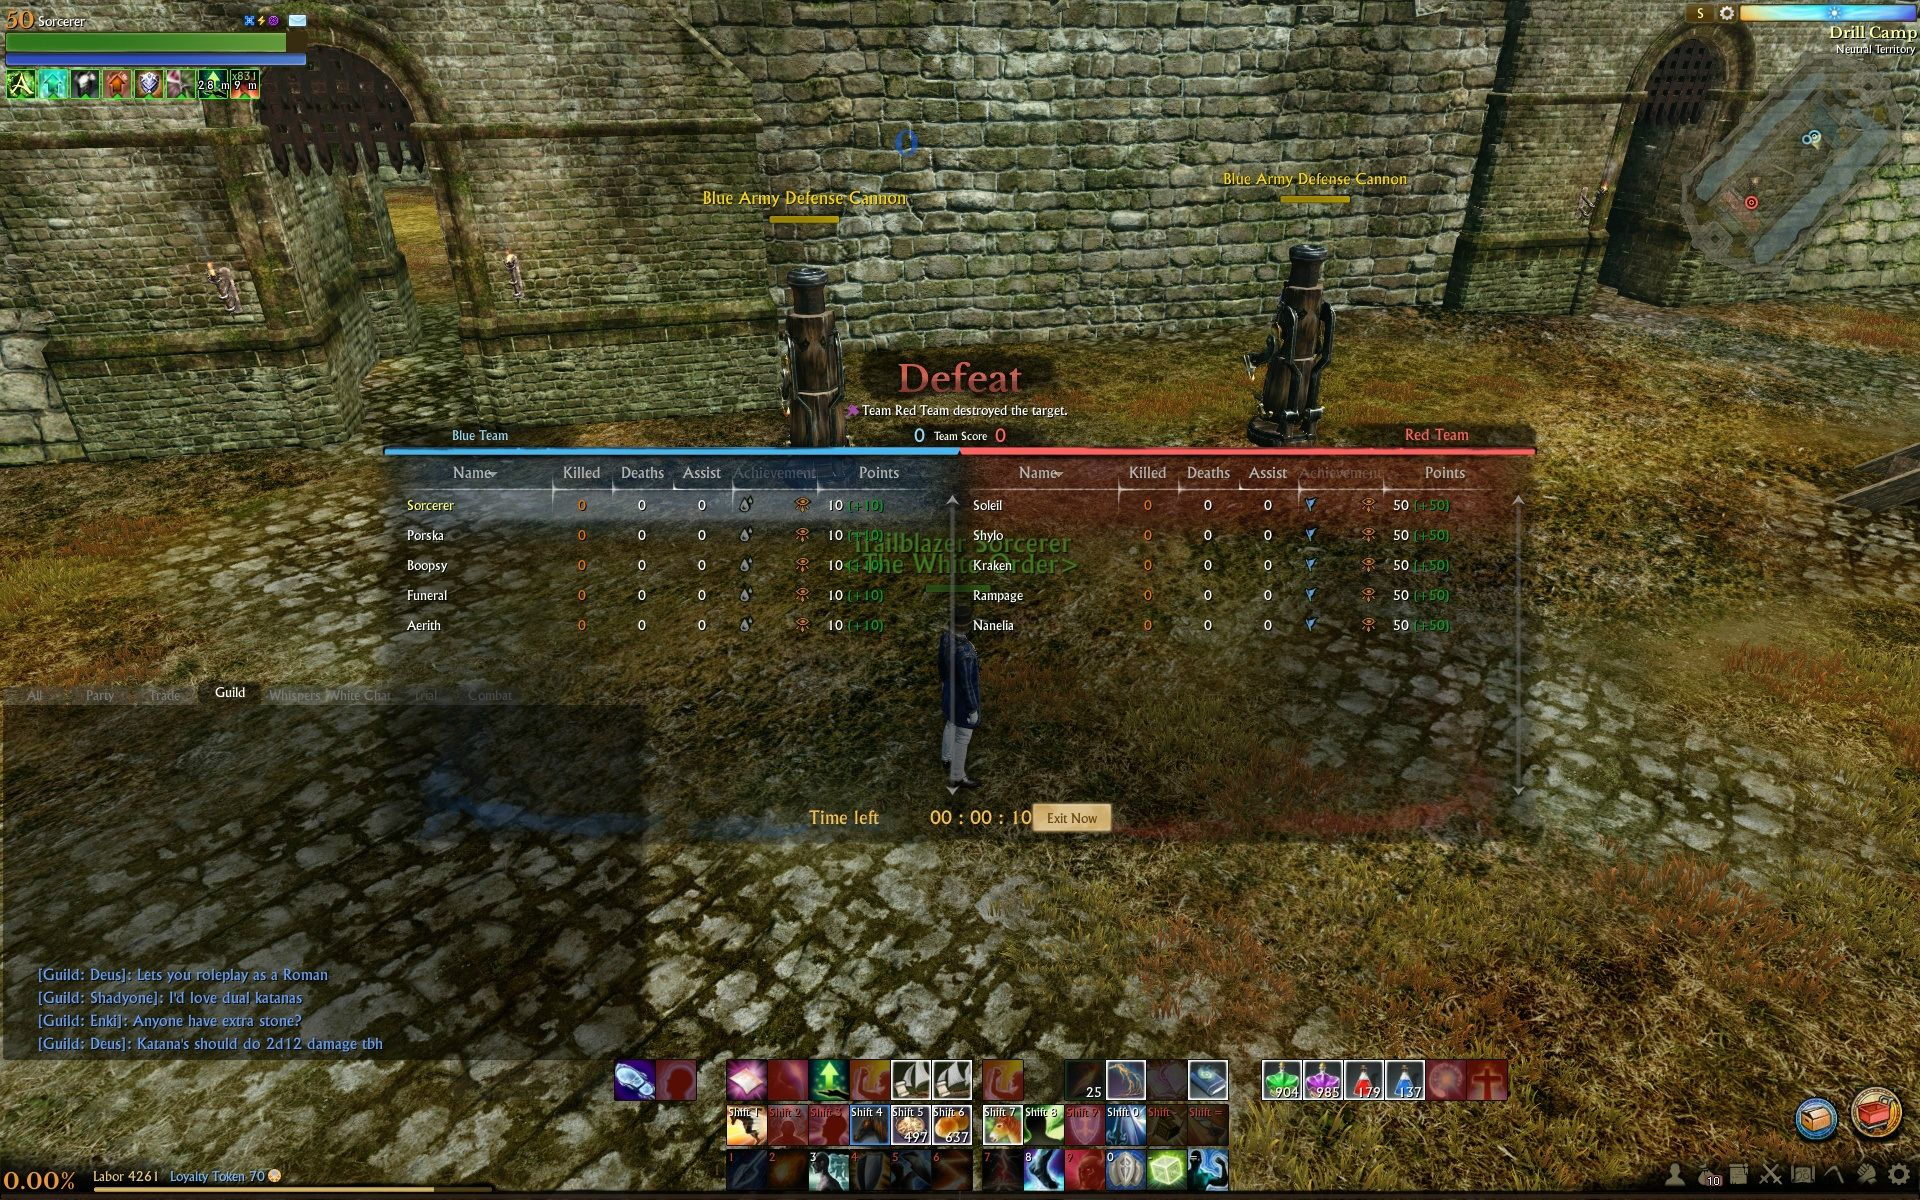 Mmo cheater xxx images